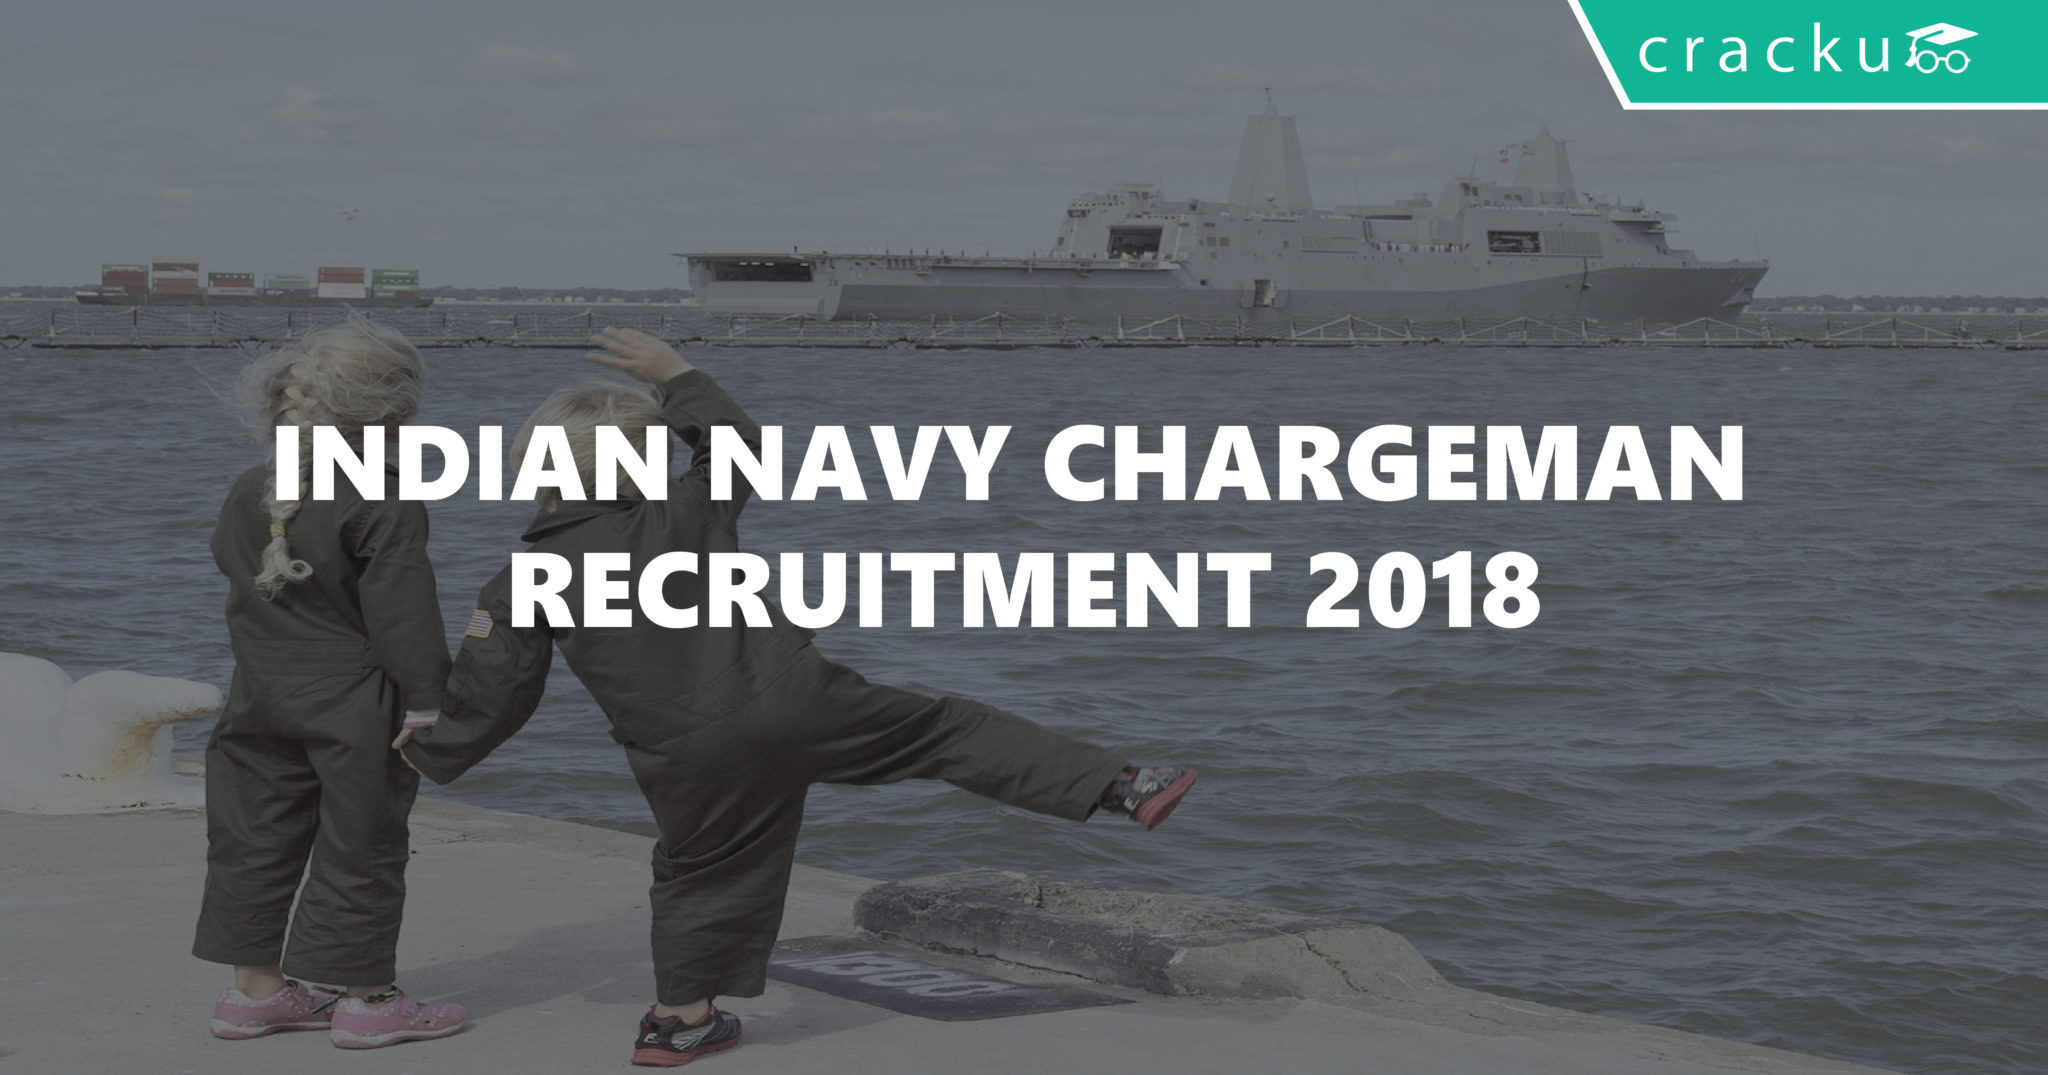 Indian Navy Chargeman Recruitment 2018 For 10 2 12th